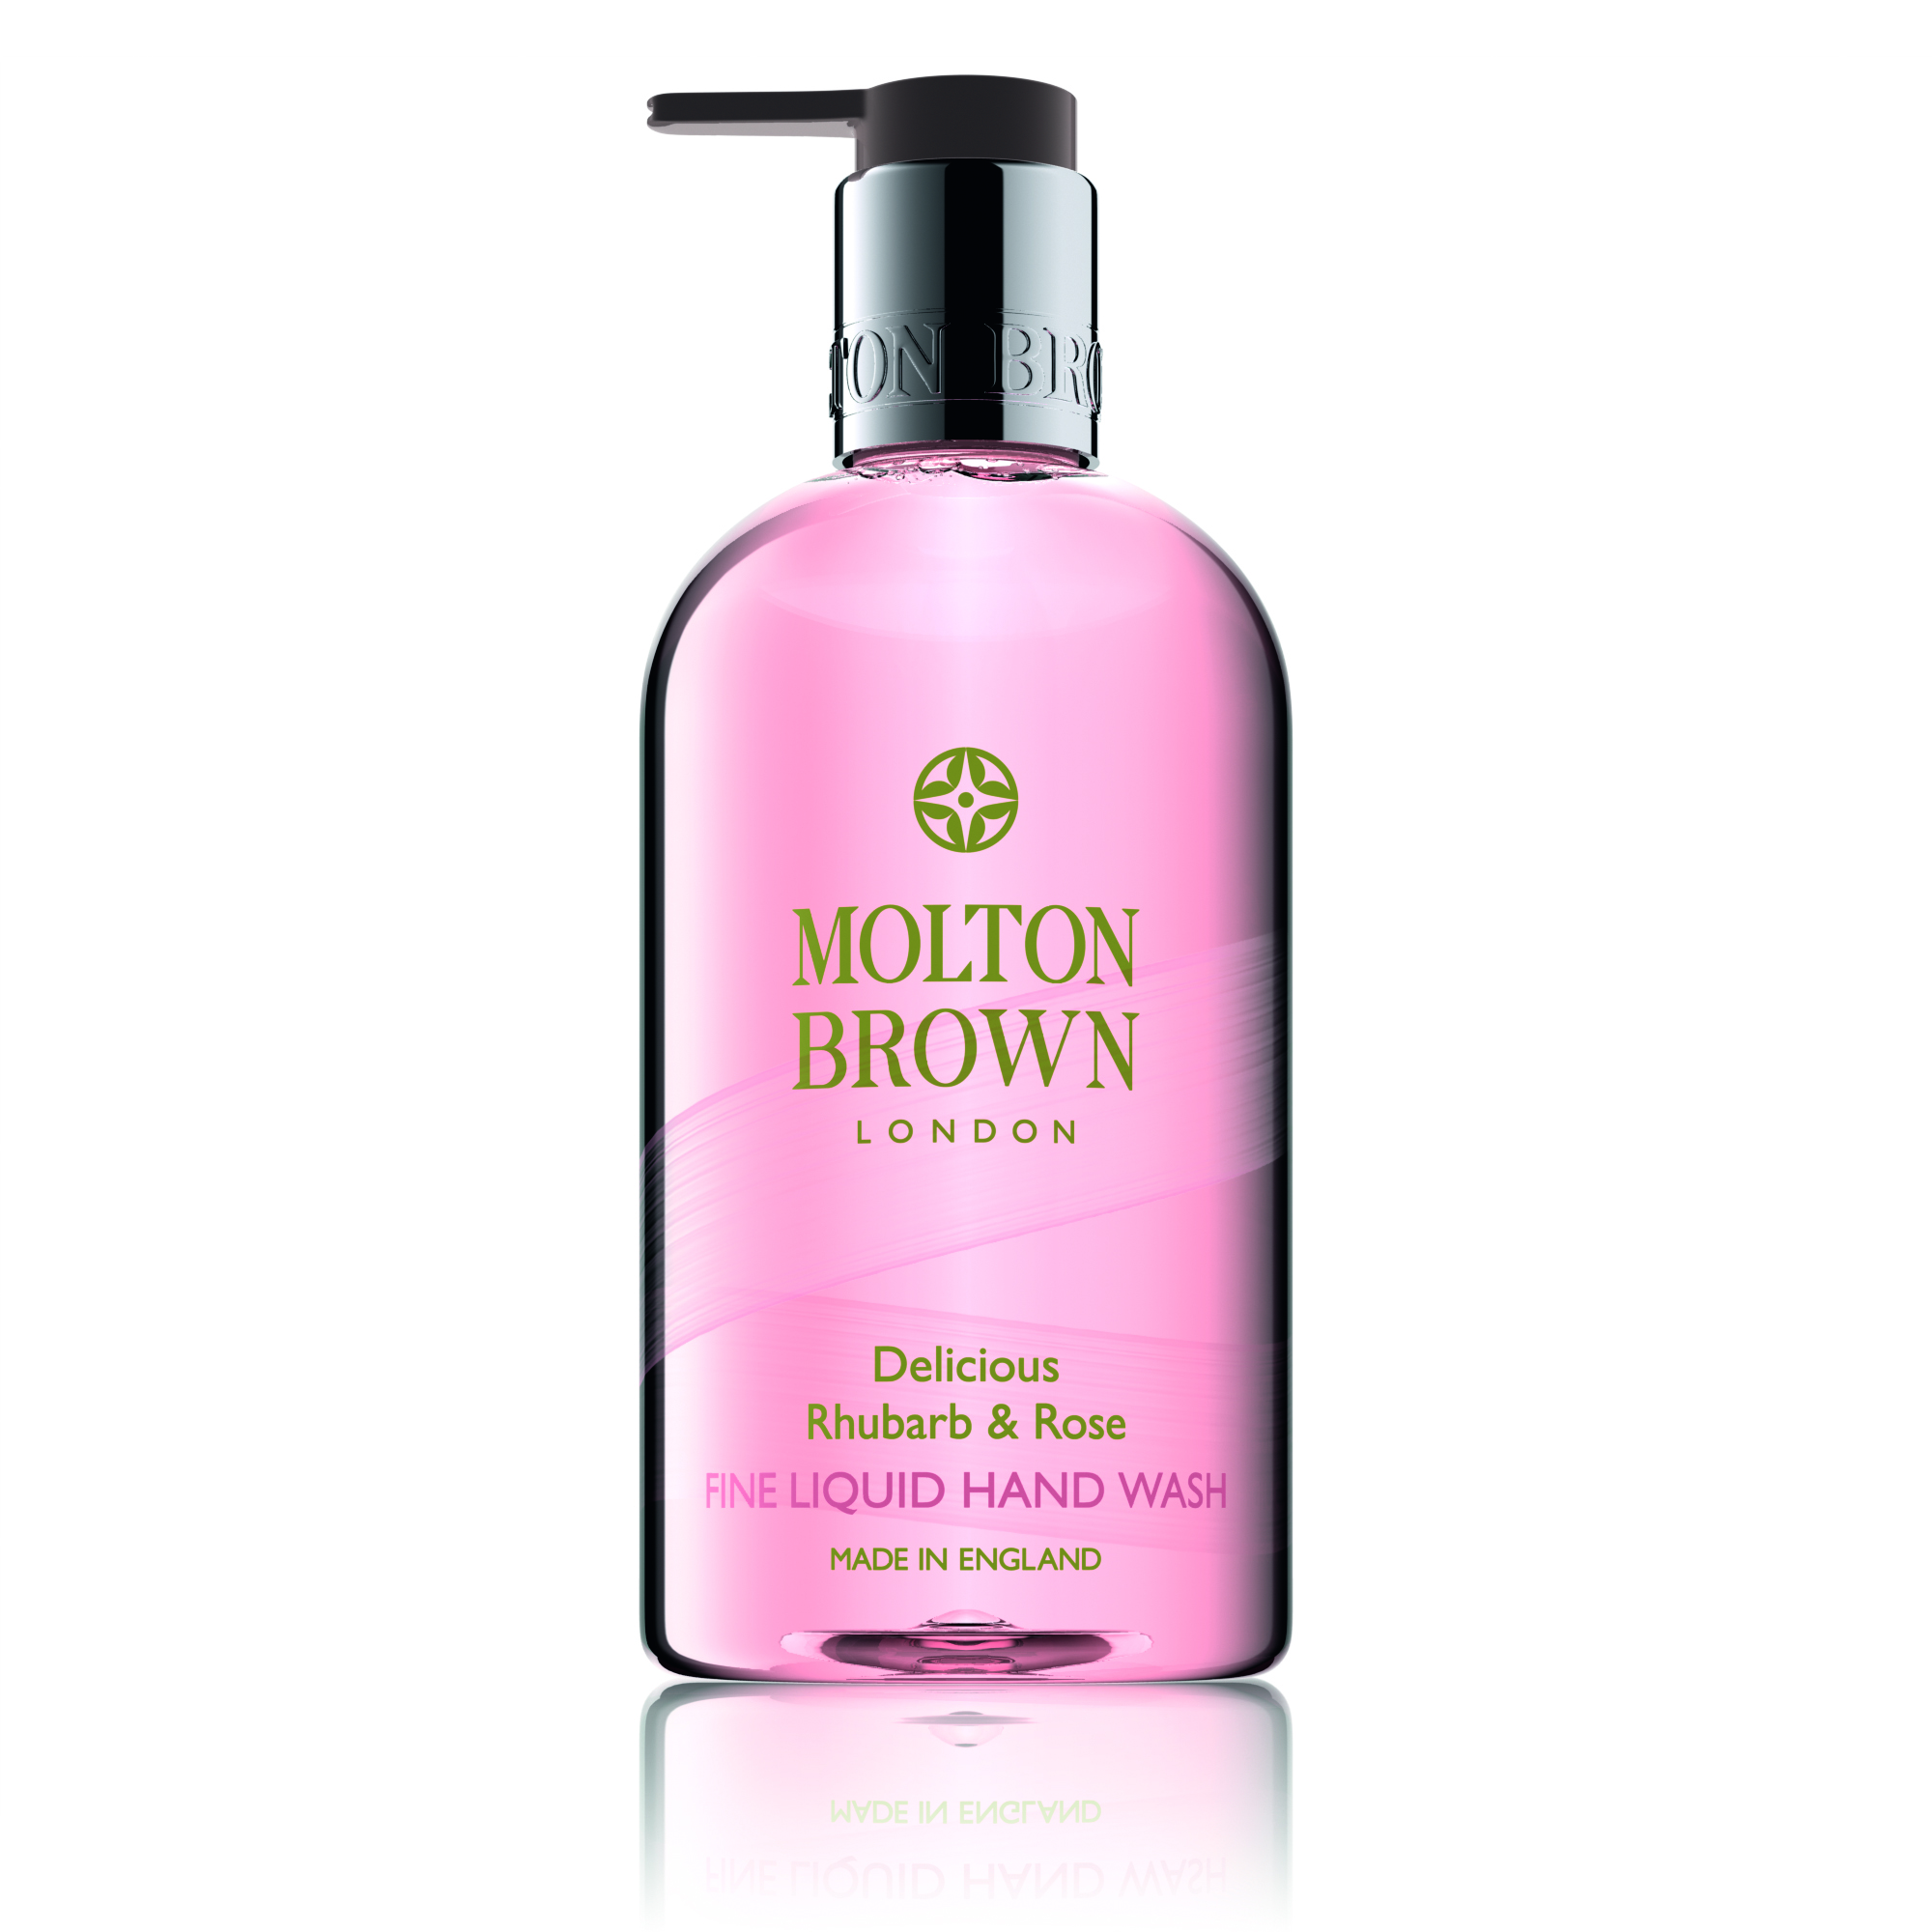 molton brown hand wash jarrold norwich. Black Bedroom Furniture Sets. Home Design Ideas